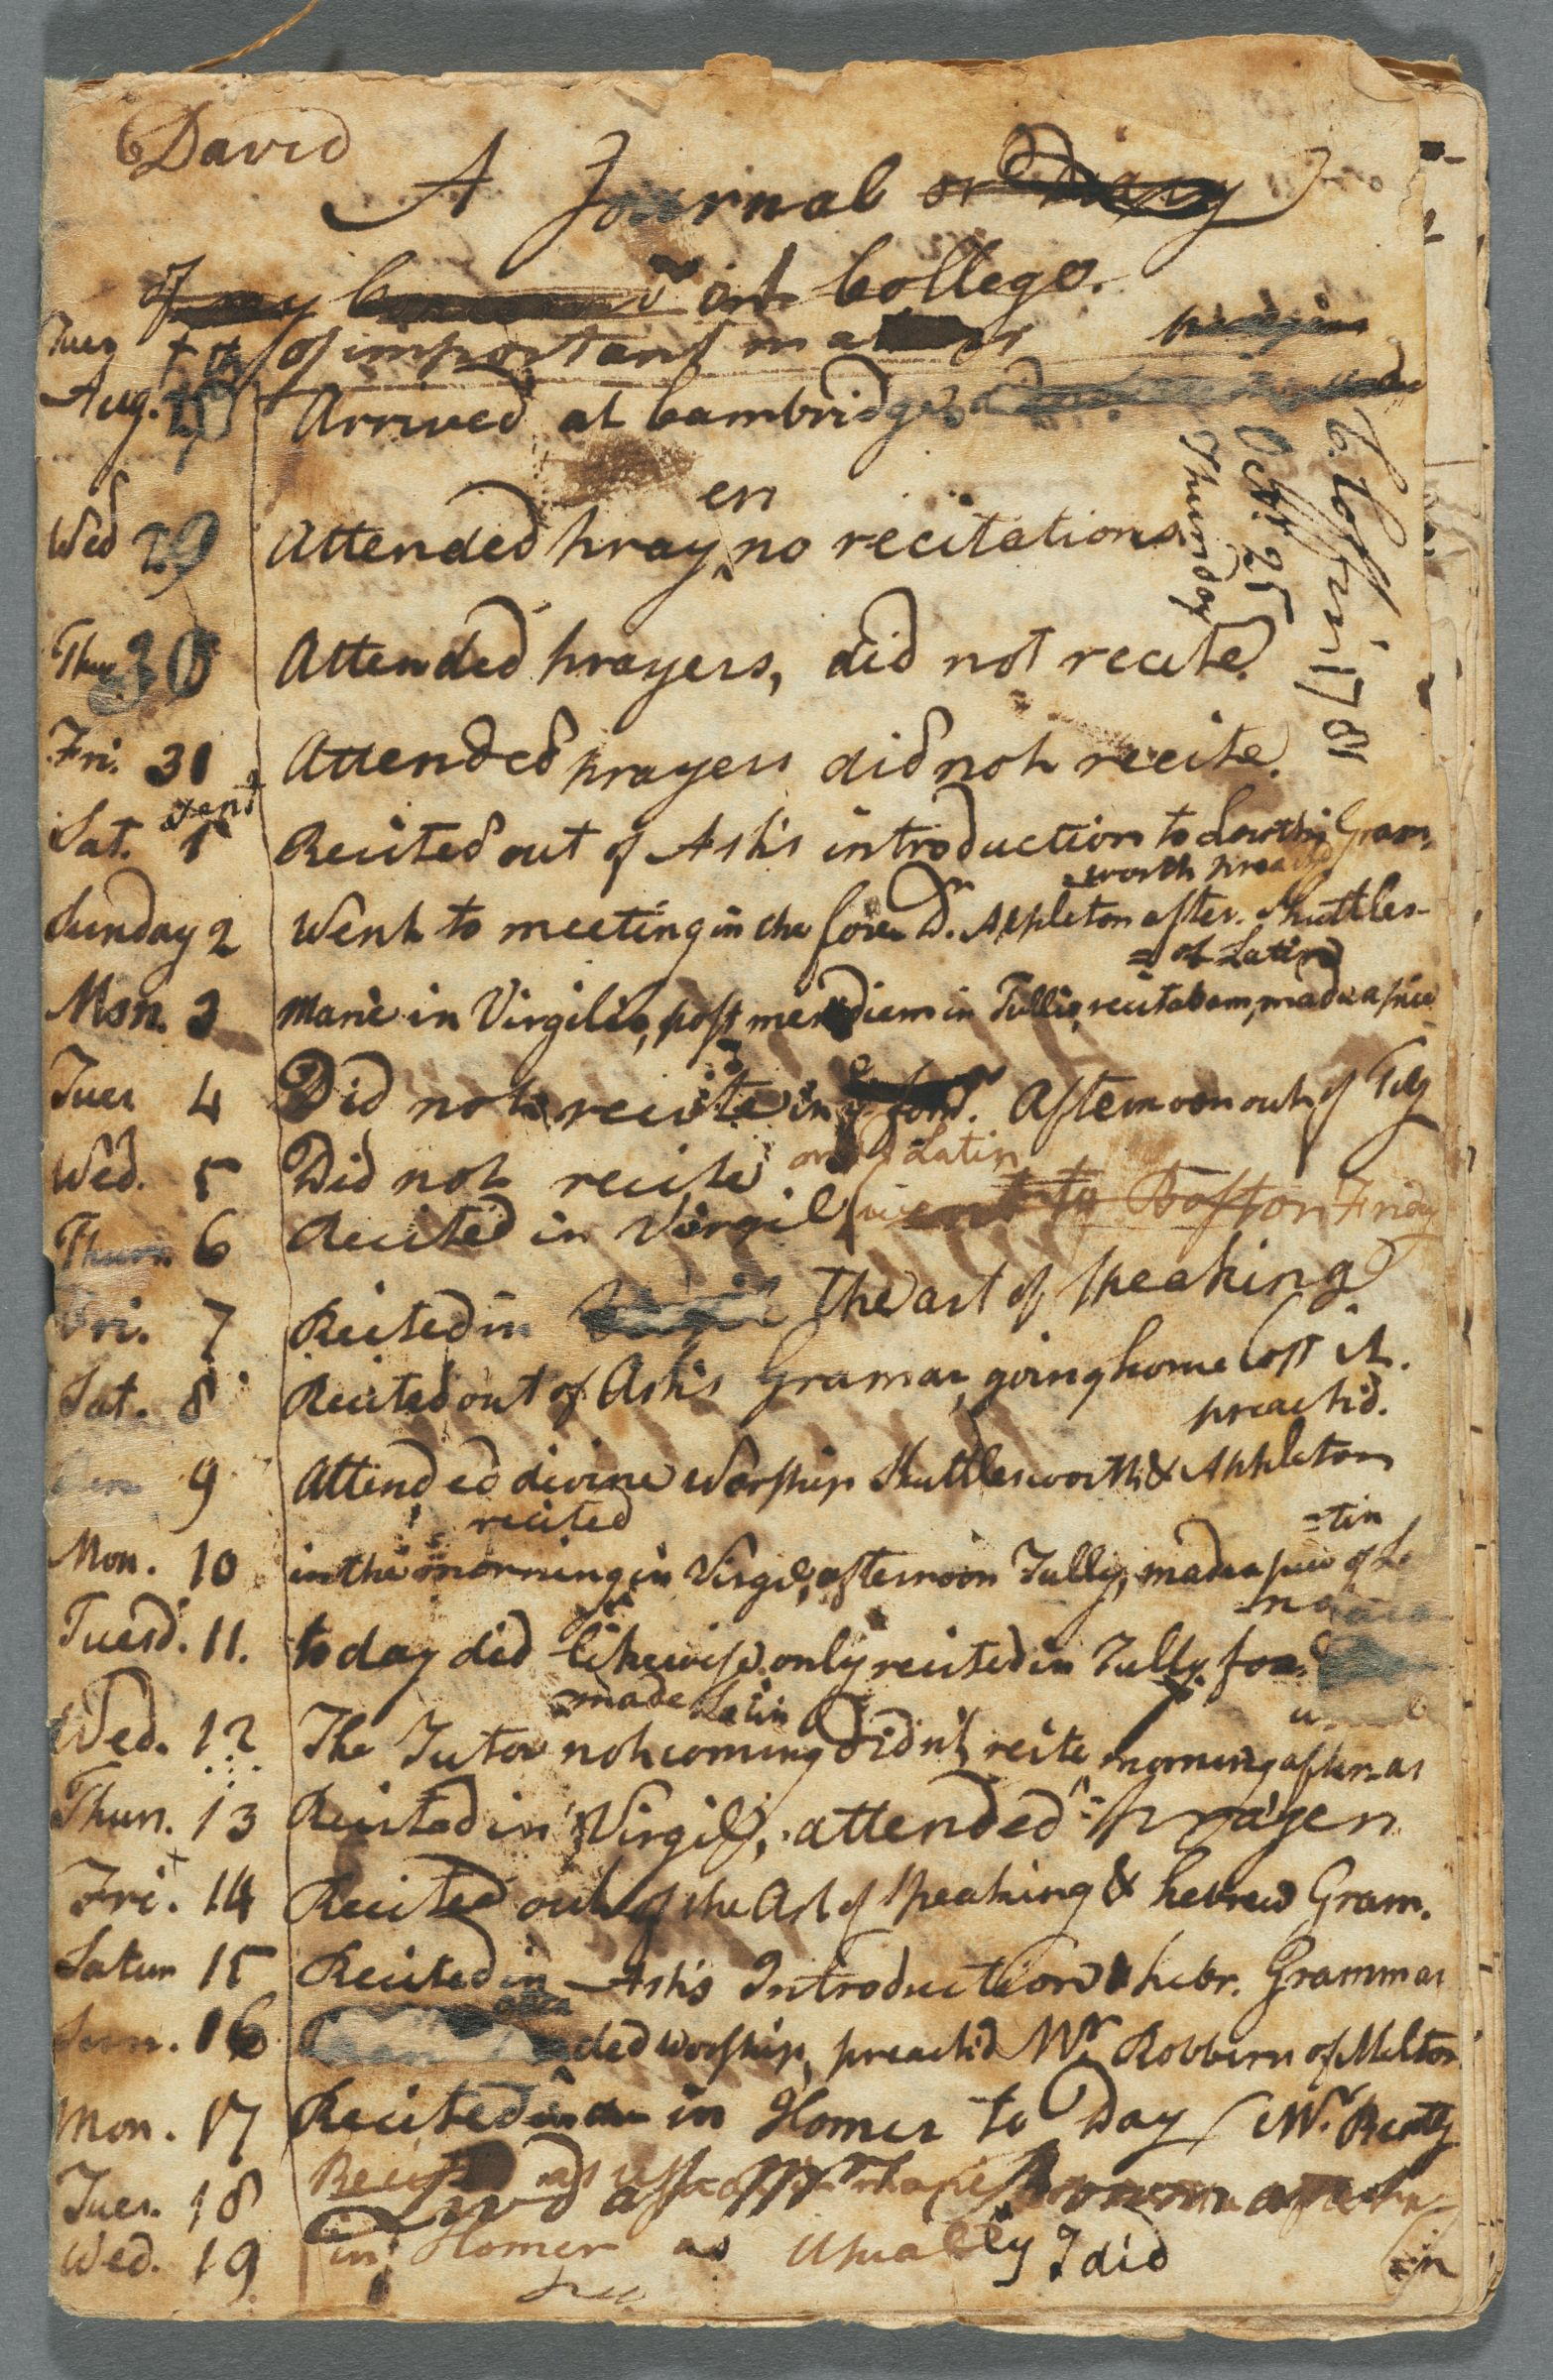 Journal of Charles Coffin and David Gurney, 1781-1785